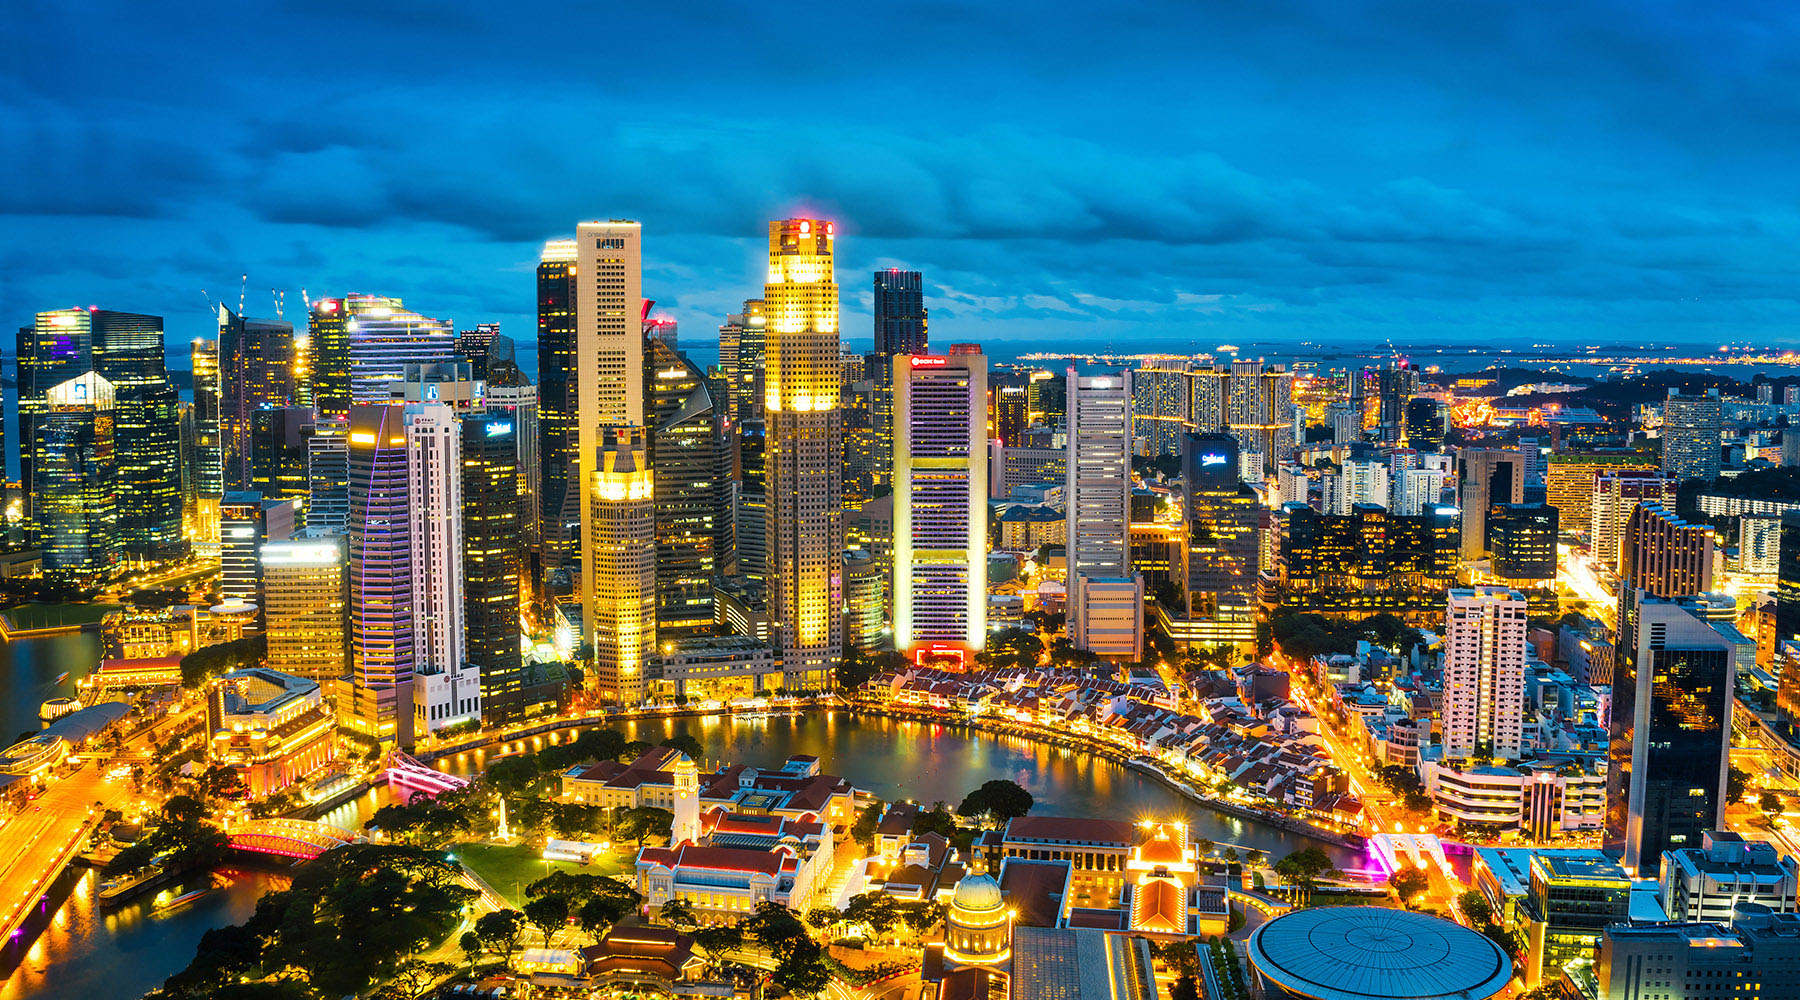 14-Night Australia To Asia & 3-Night Post Singapore Stay